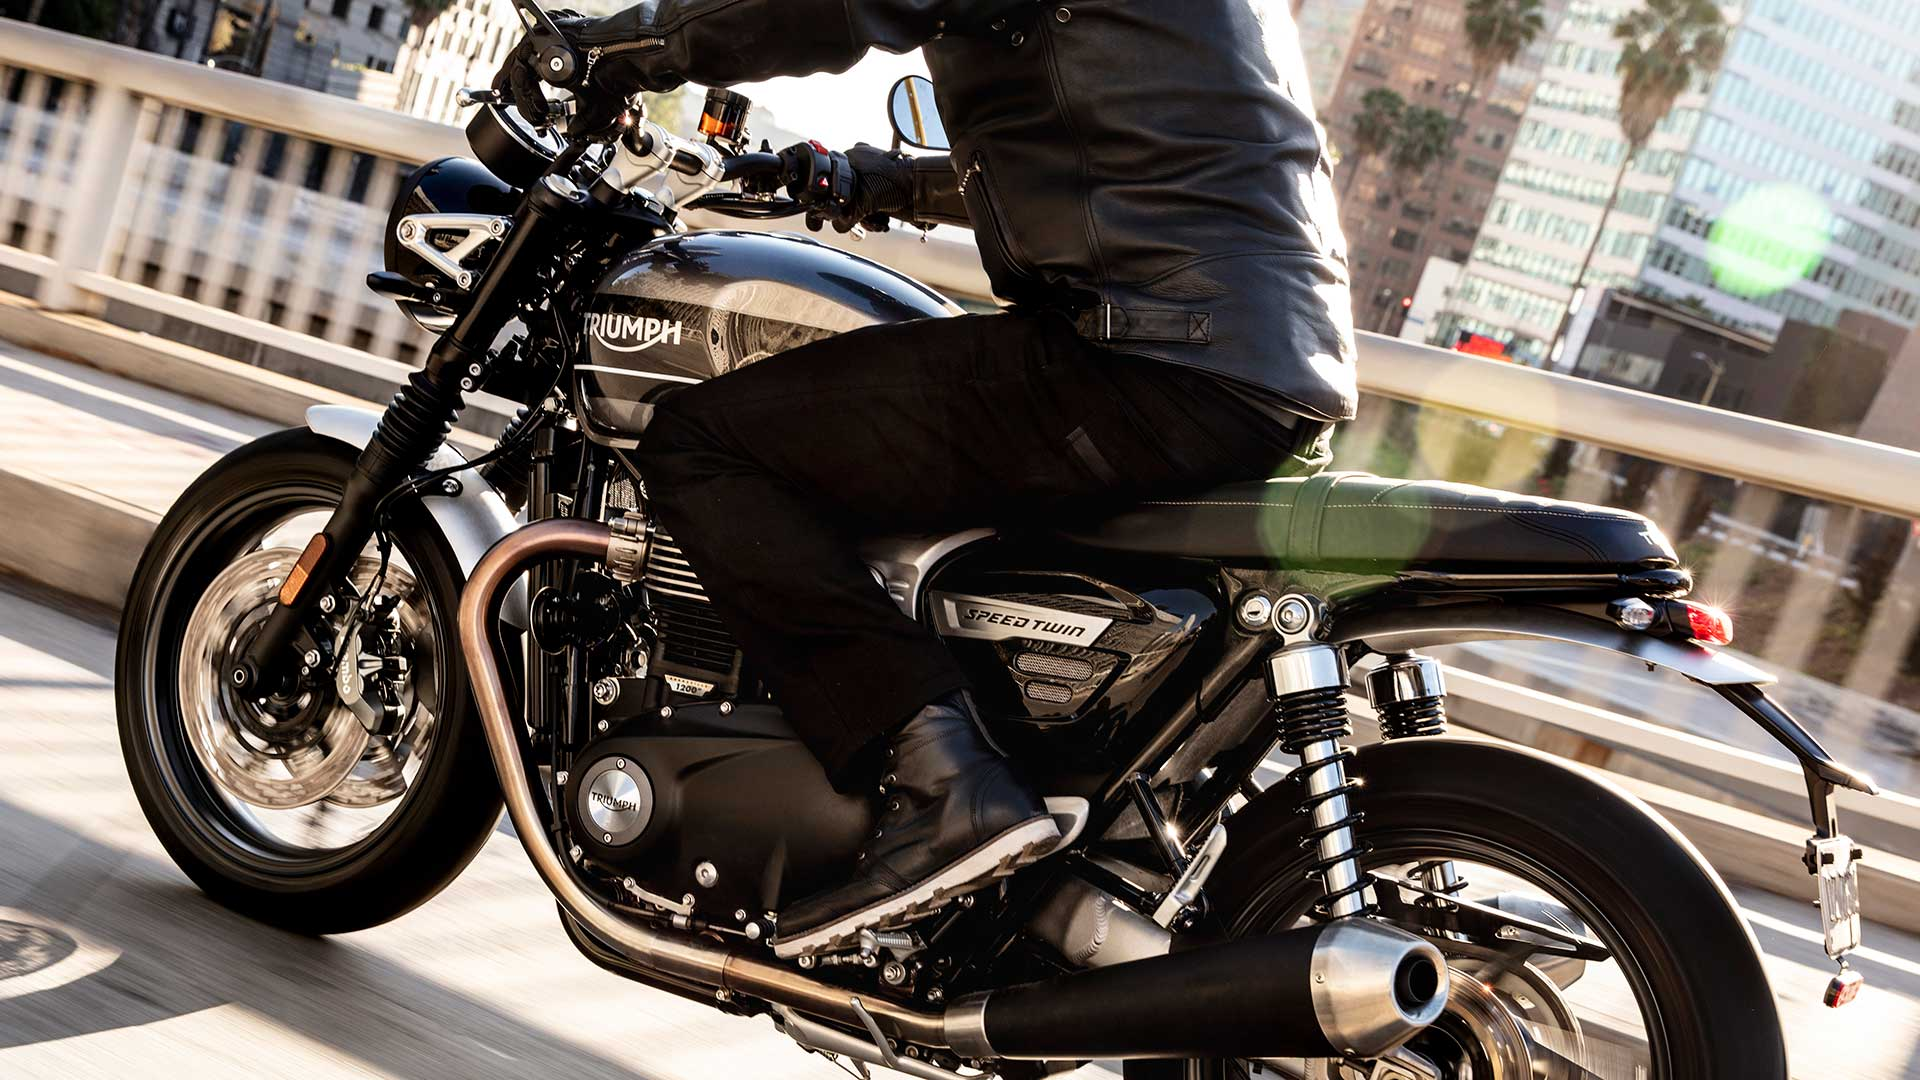 Triumph Speed Twin riding through the city wearing black Triumph Stoke boots